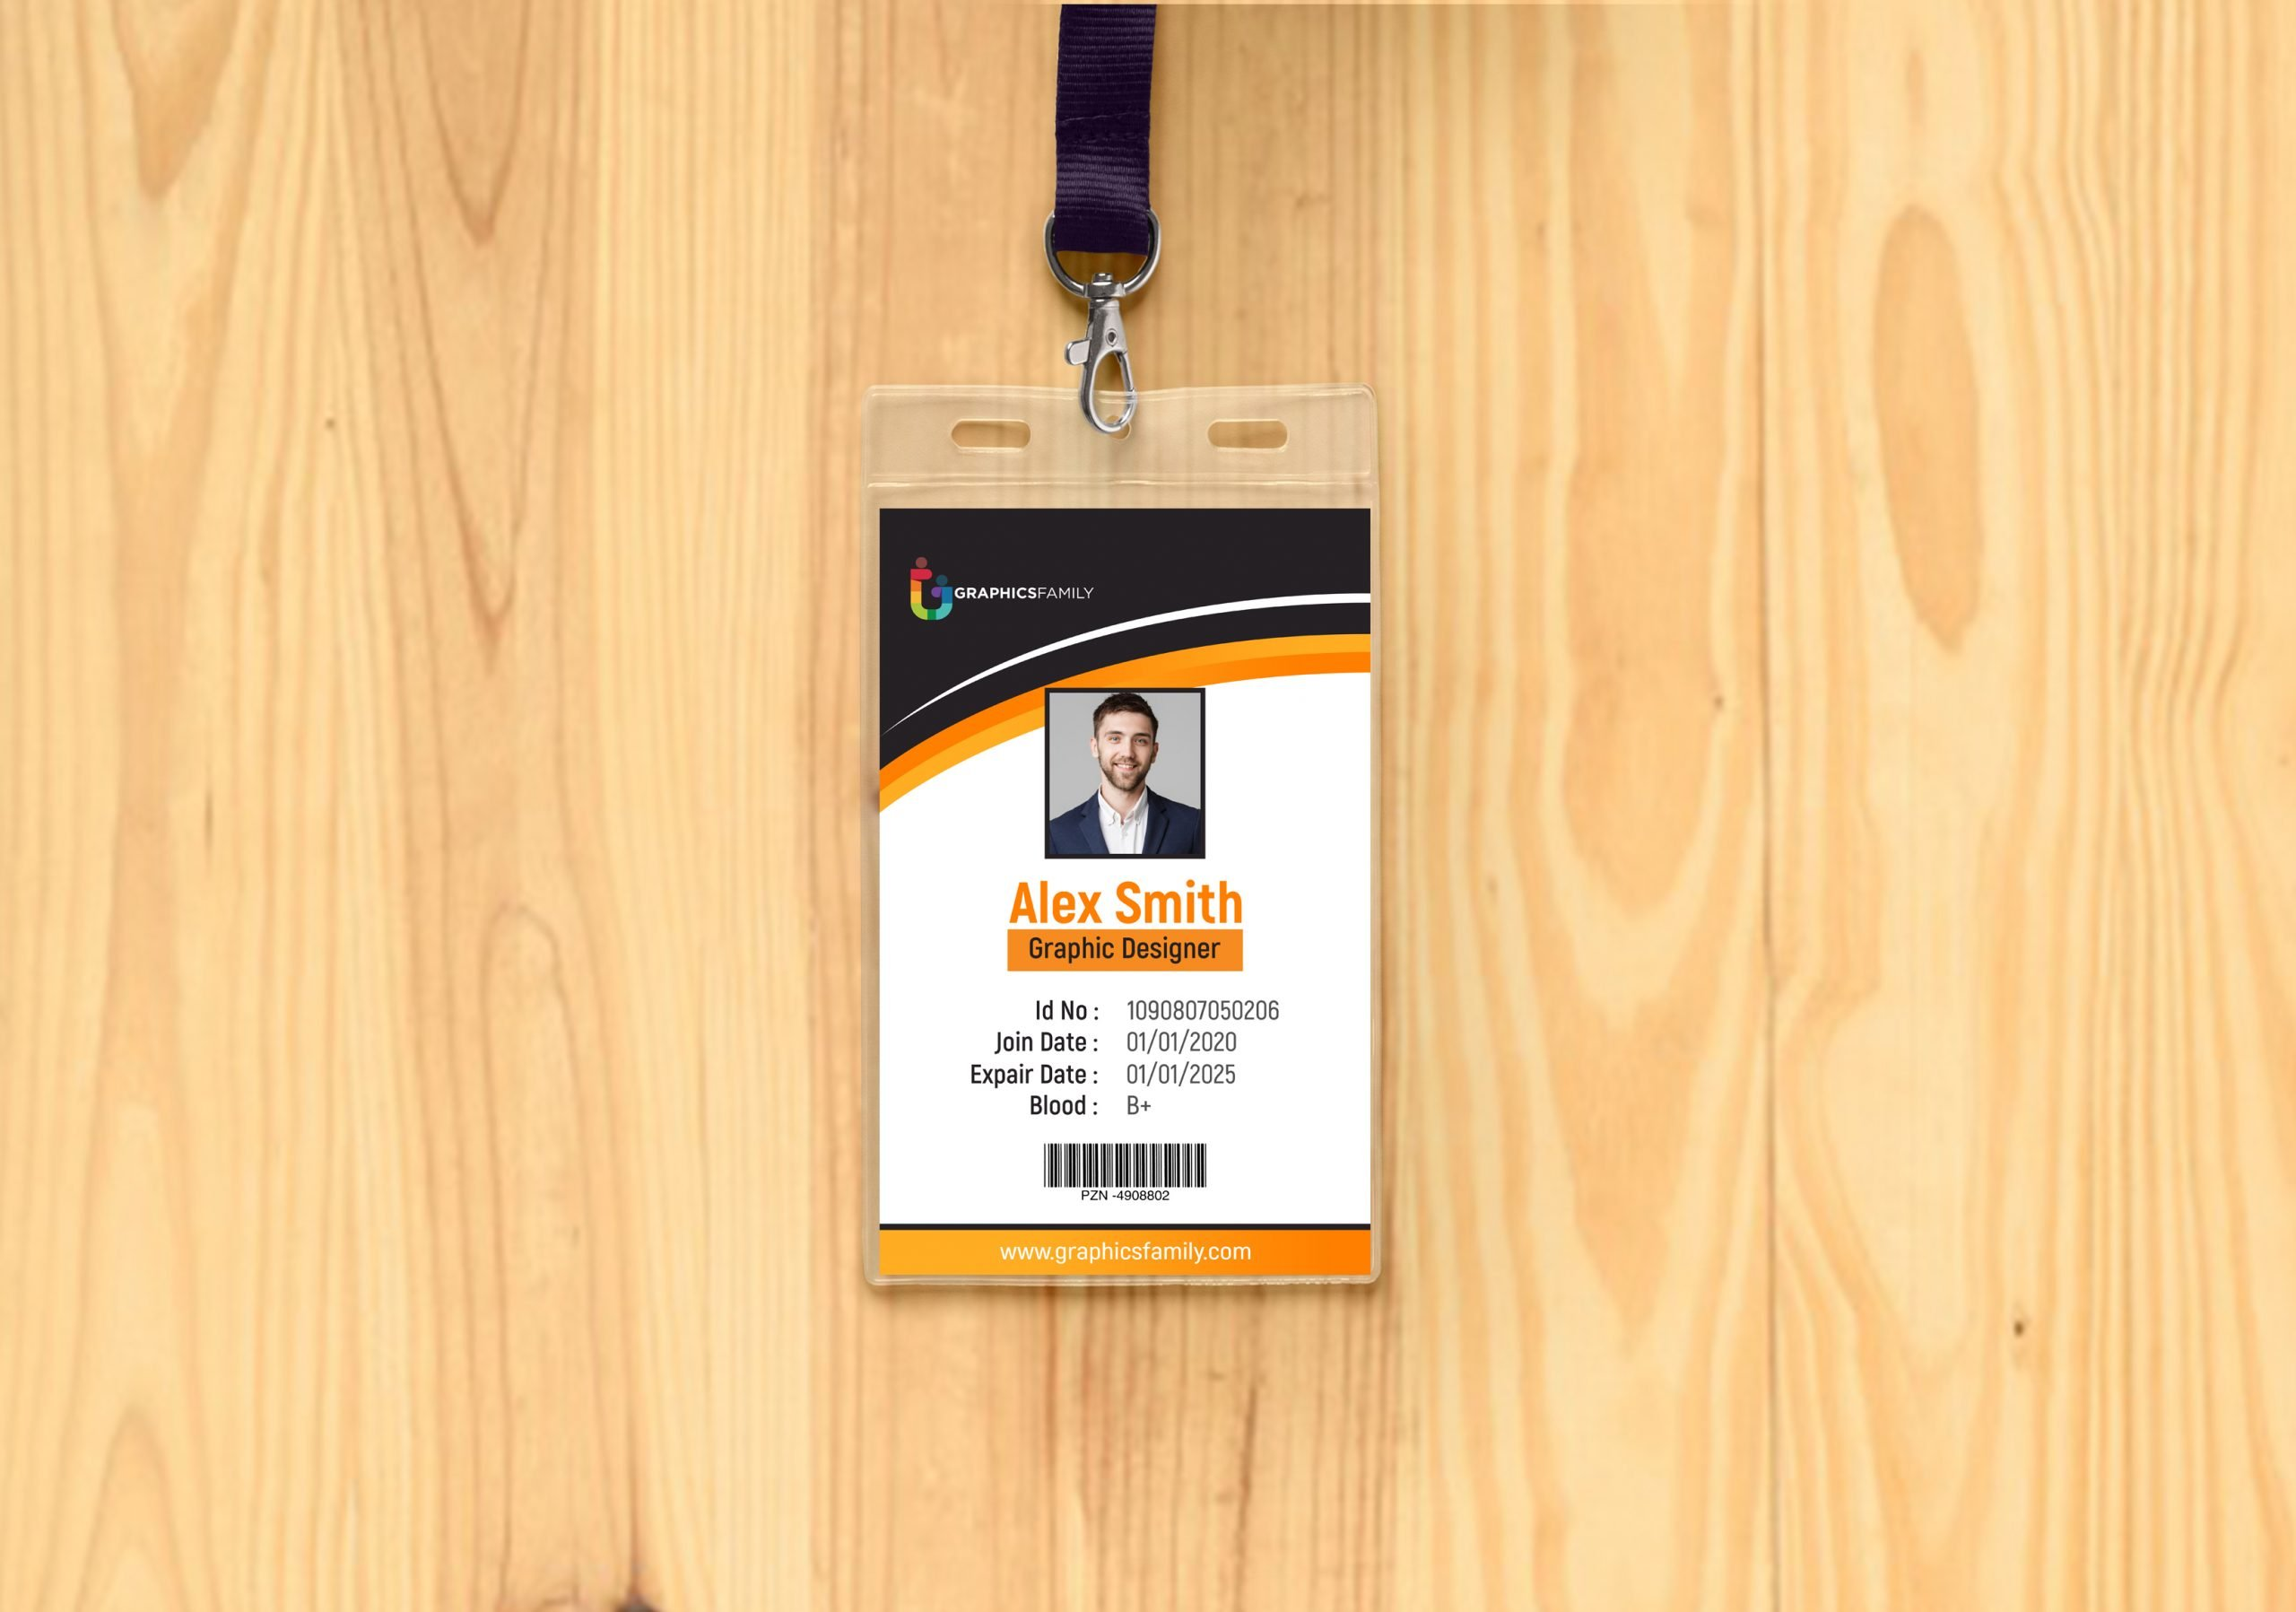 Free online ID card Template on wood